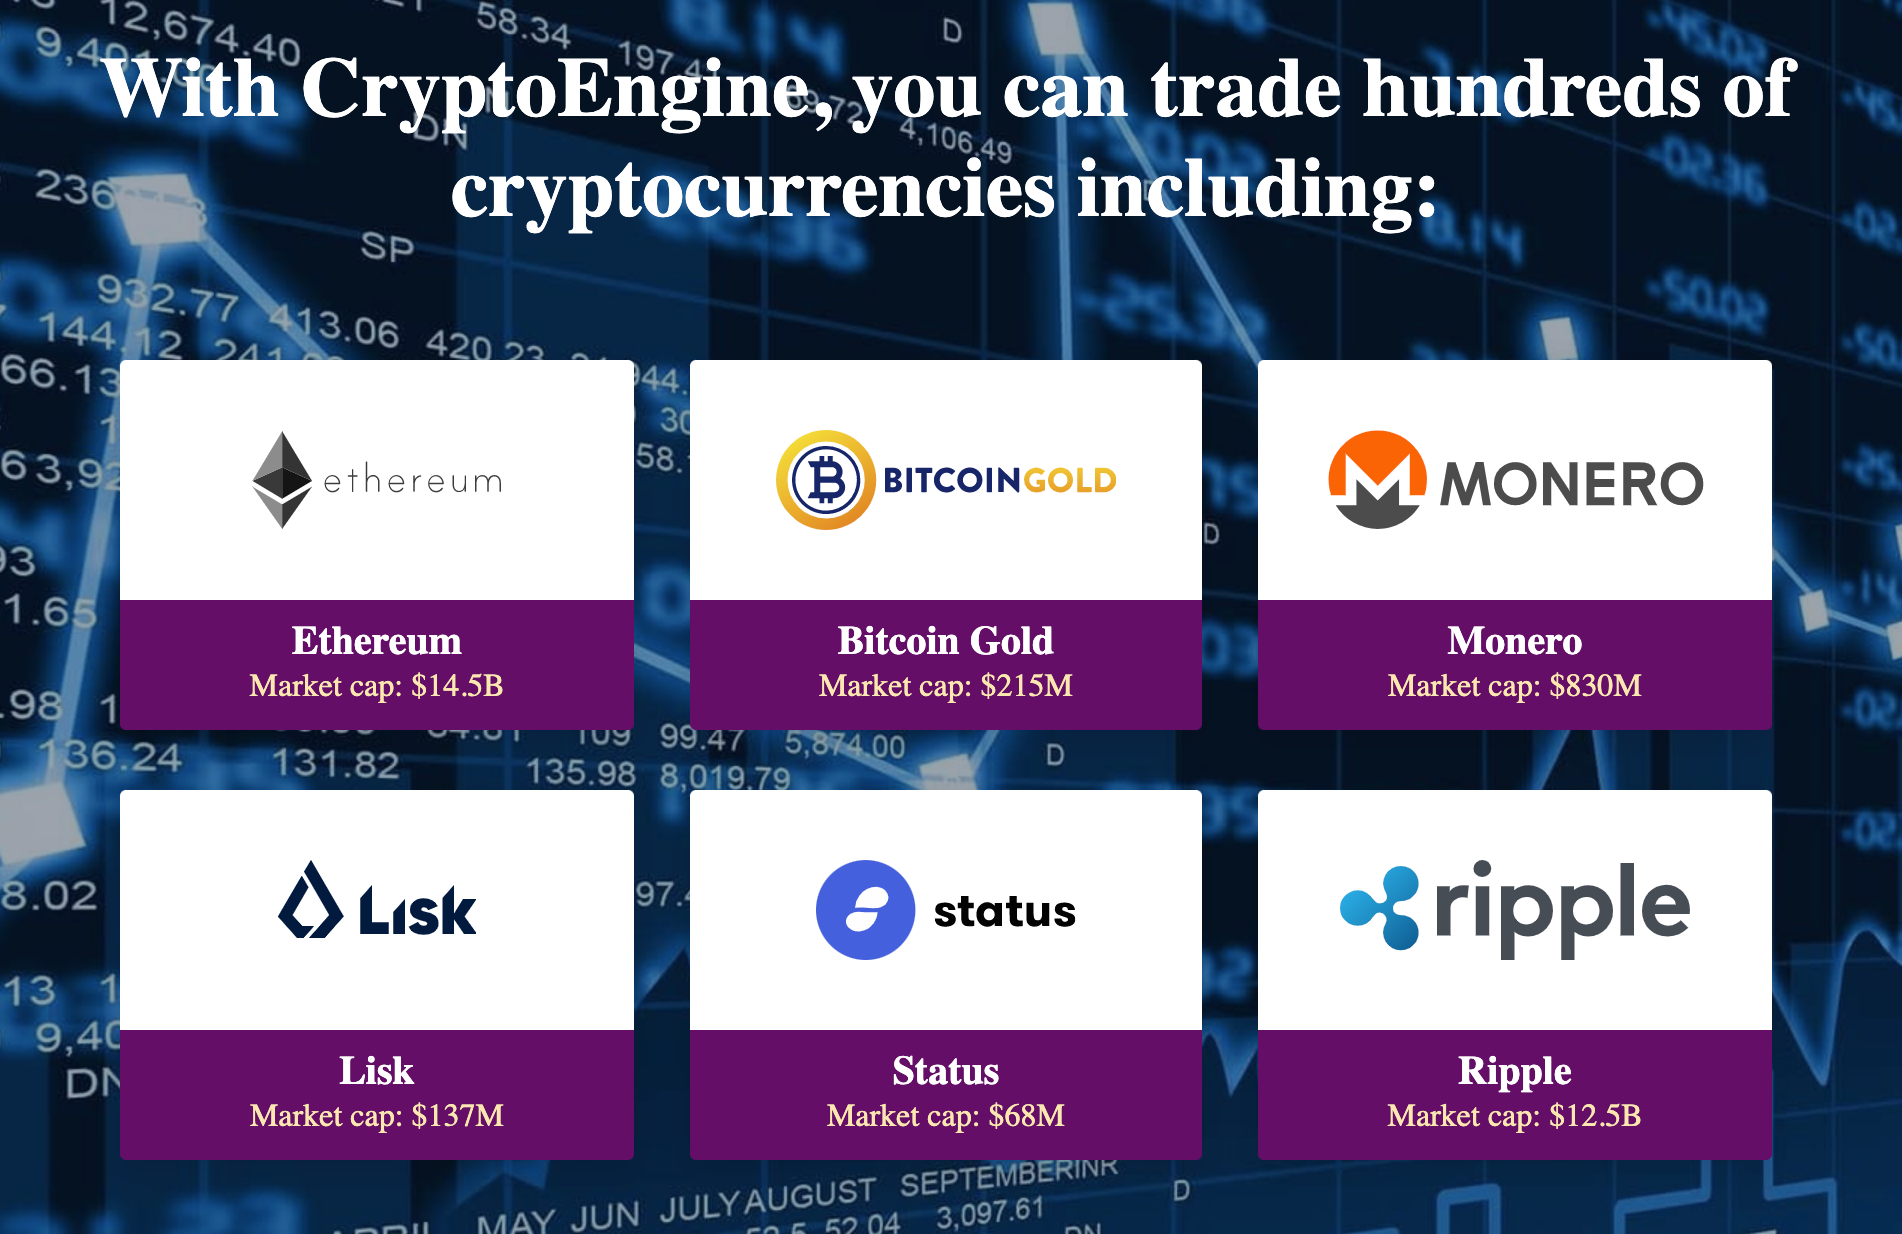 Cryptocurrencies available on Crypto Engine